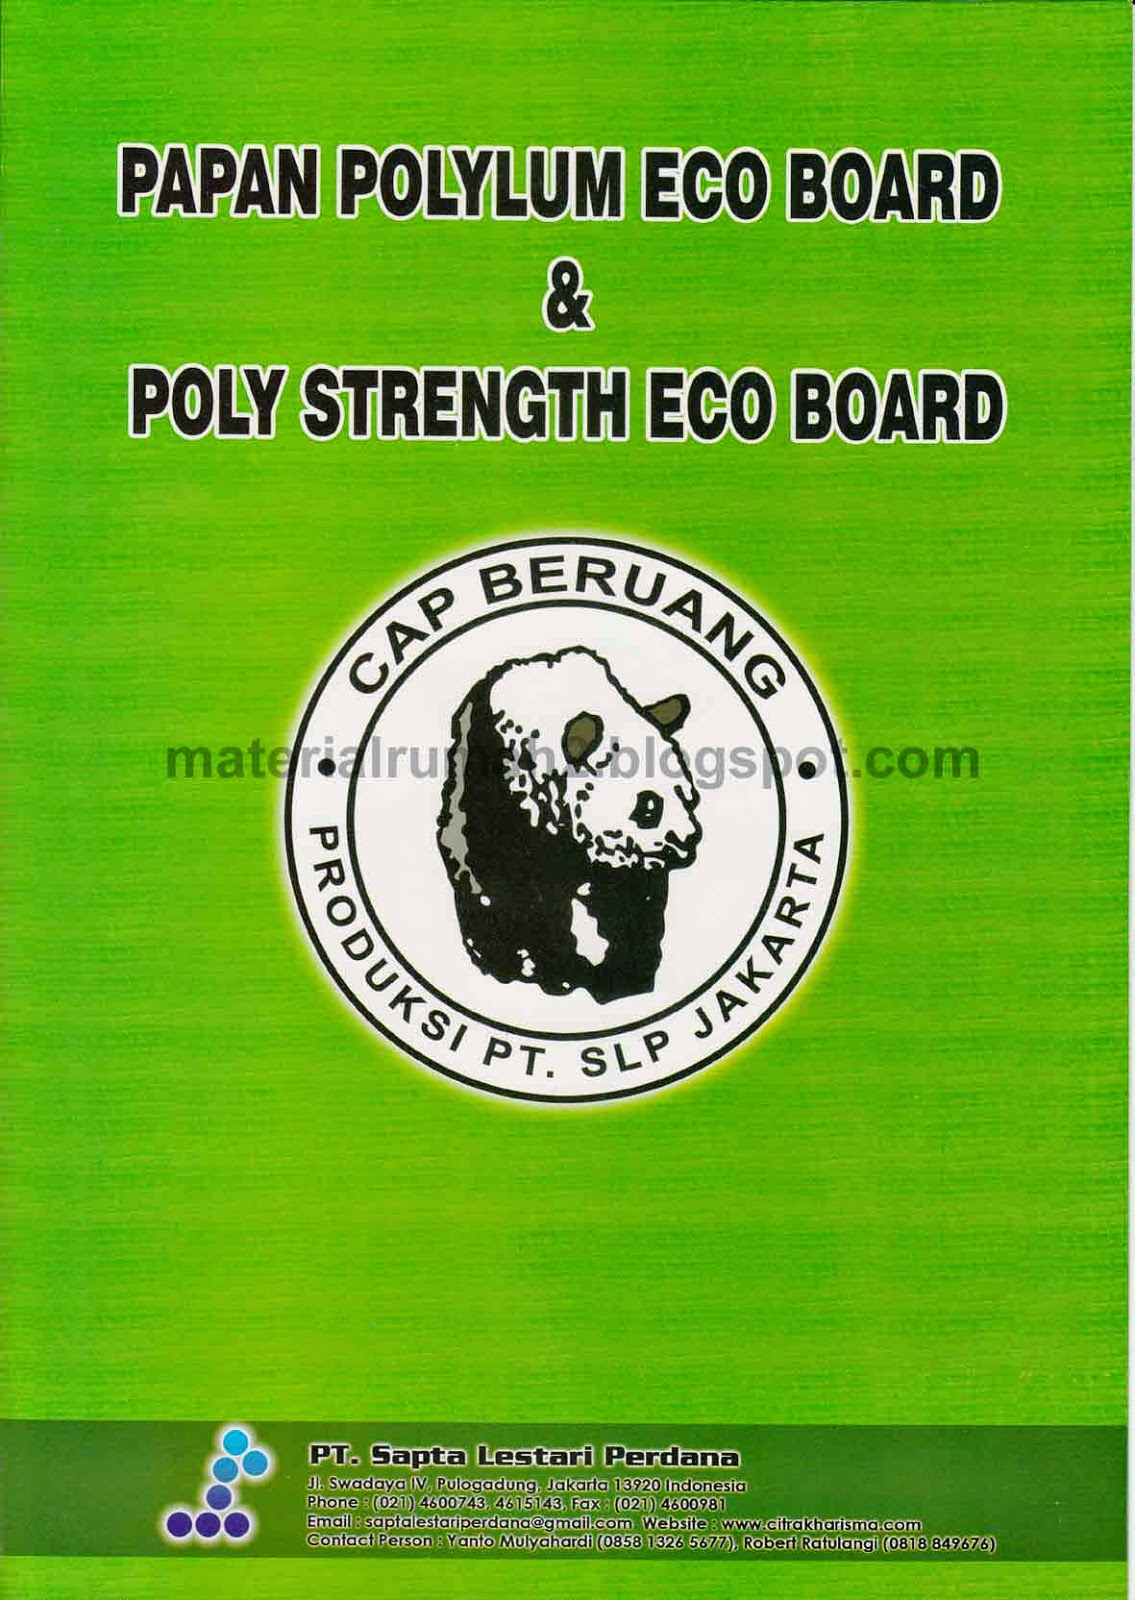 Papan Polylum Eco Board